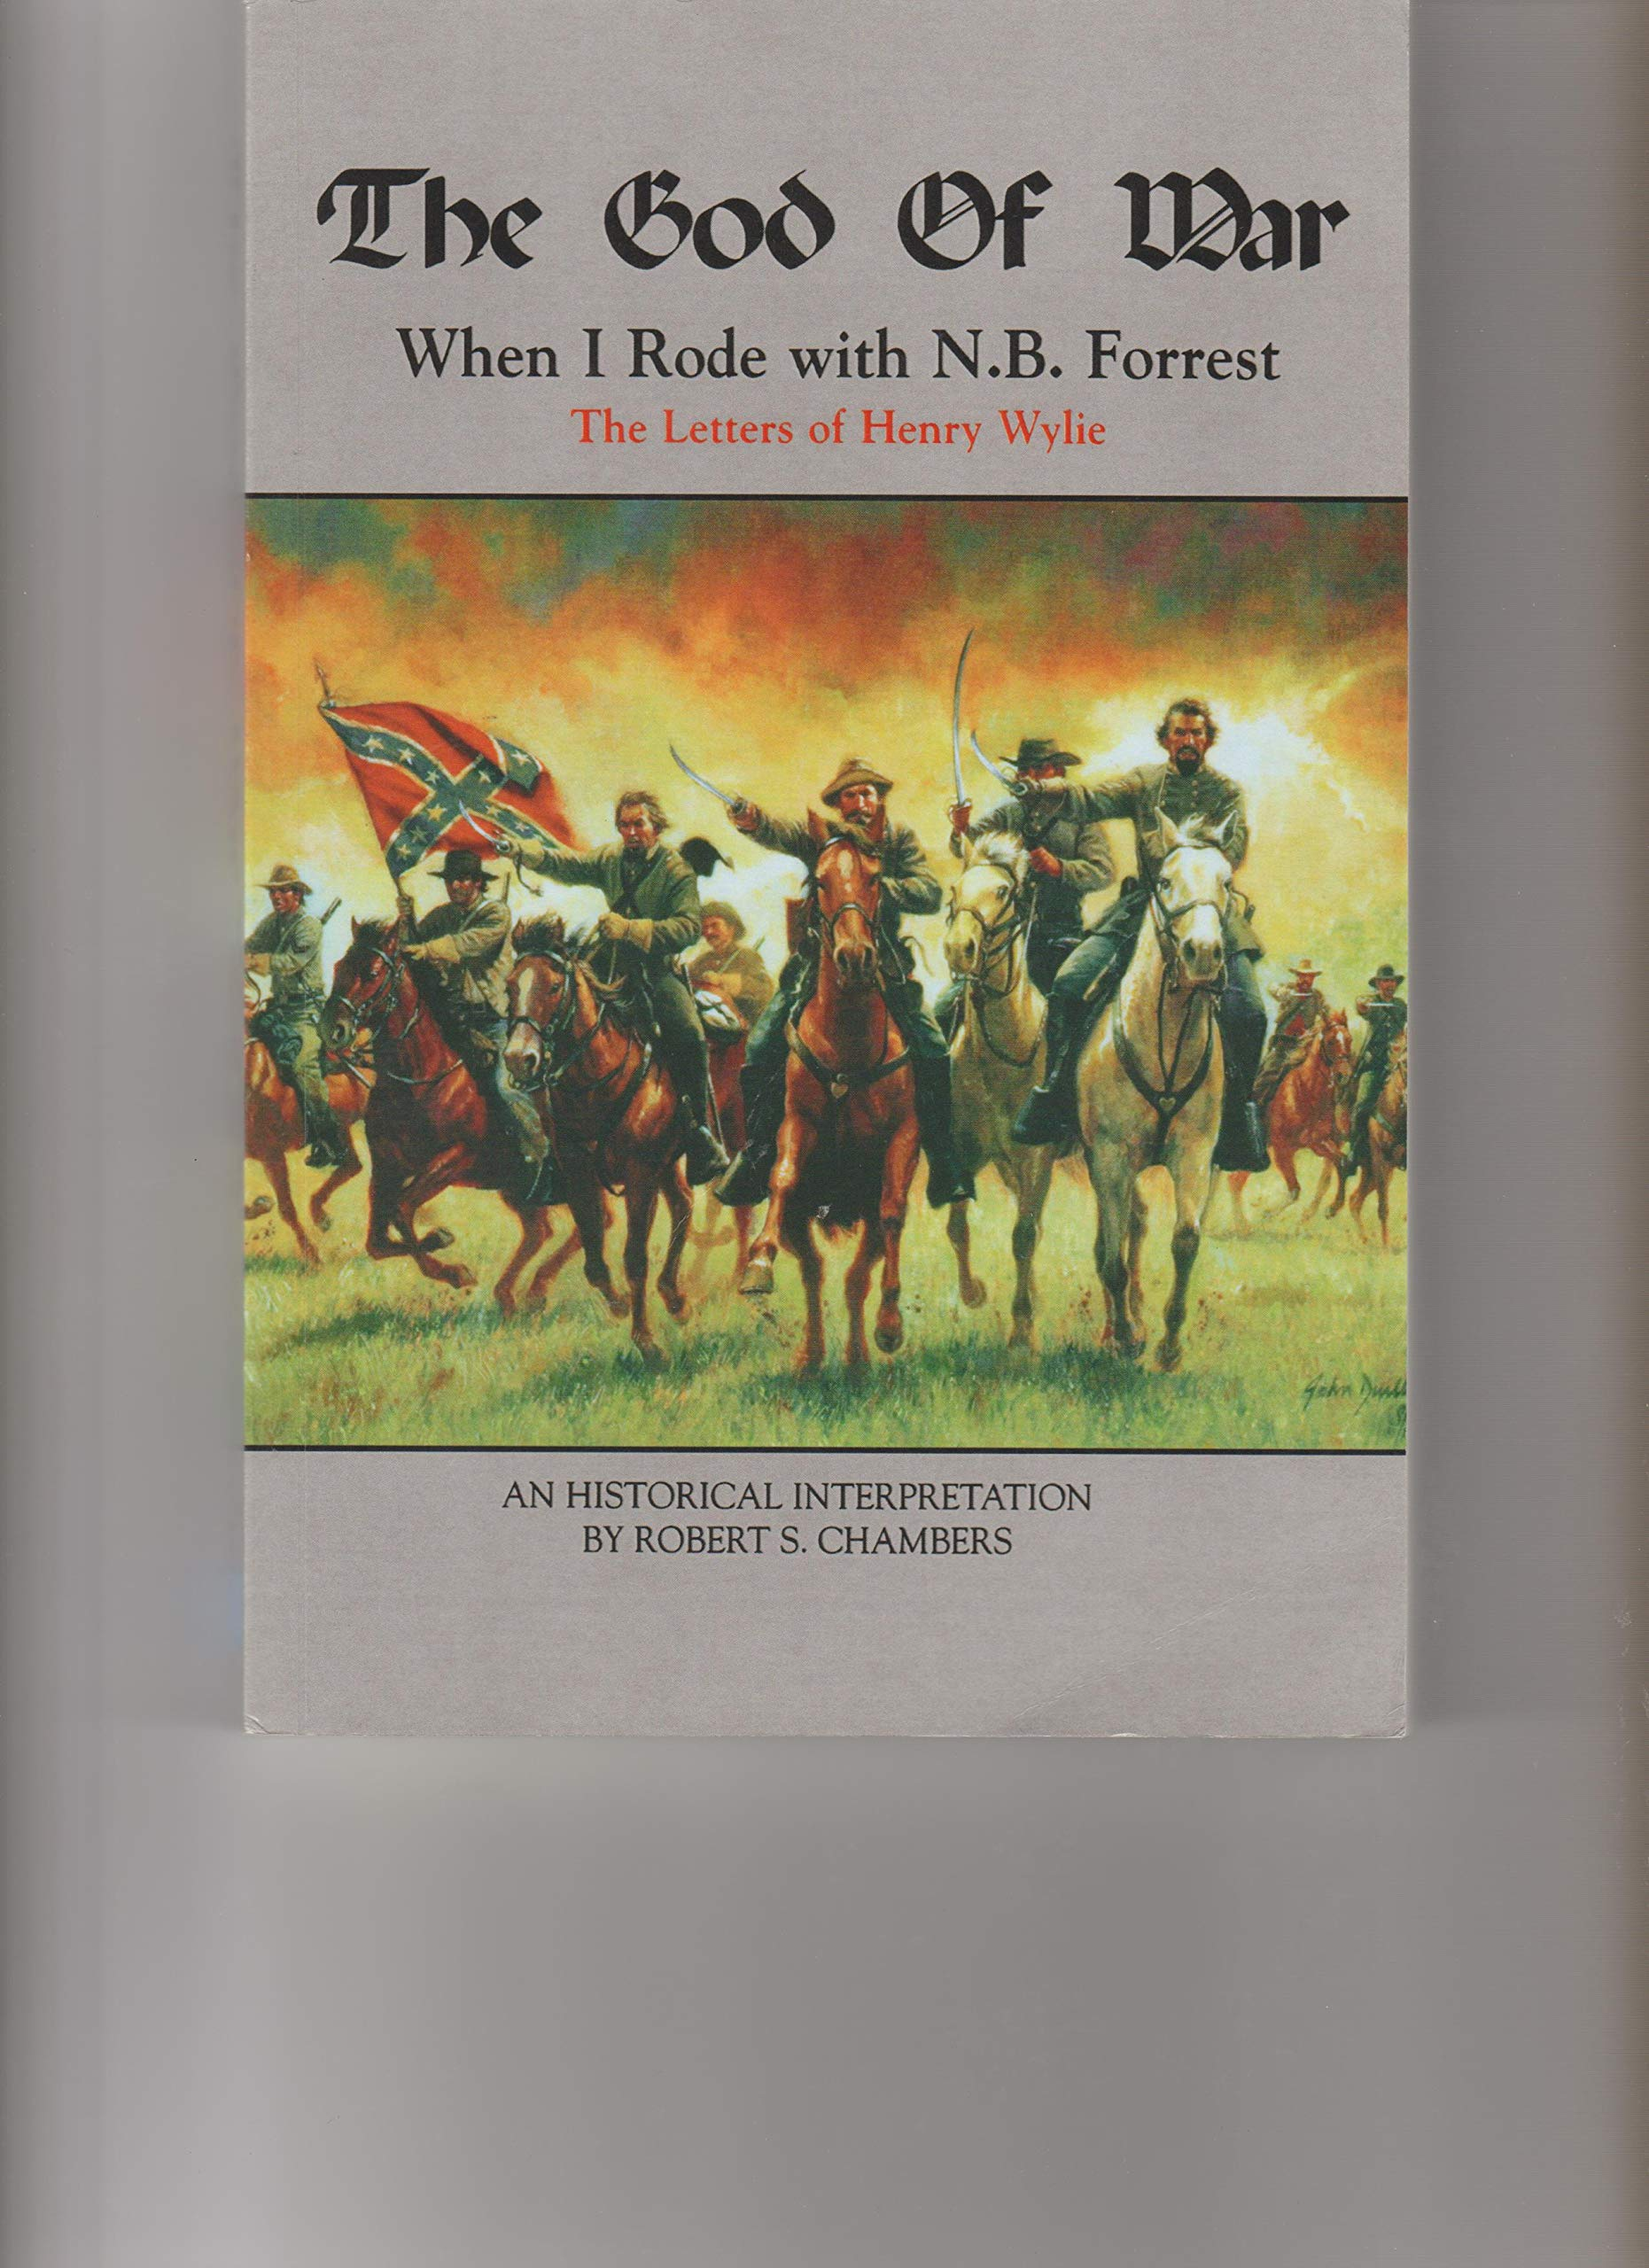 The God of War, When I Rode with N. B. Forrest: The Letters of Henry Wylie